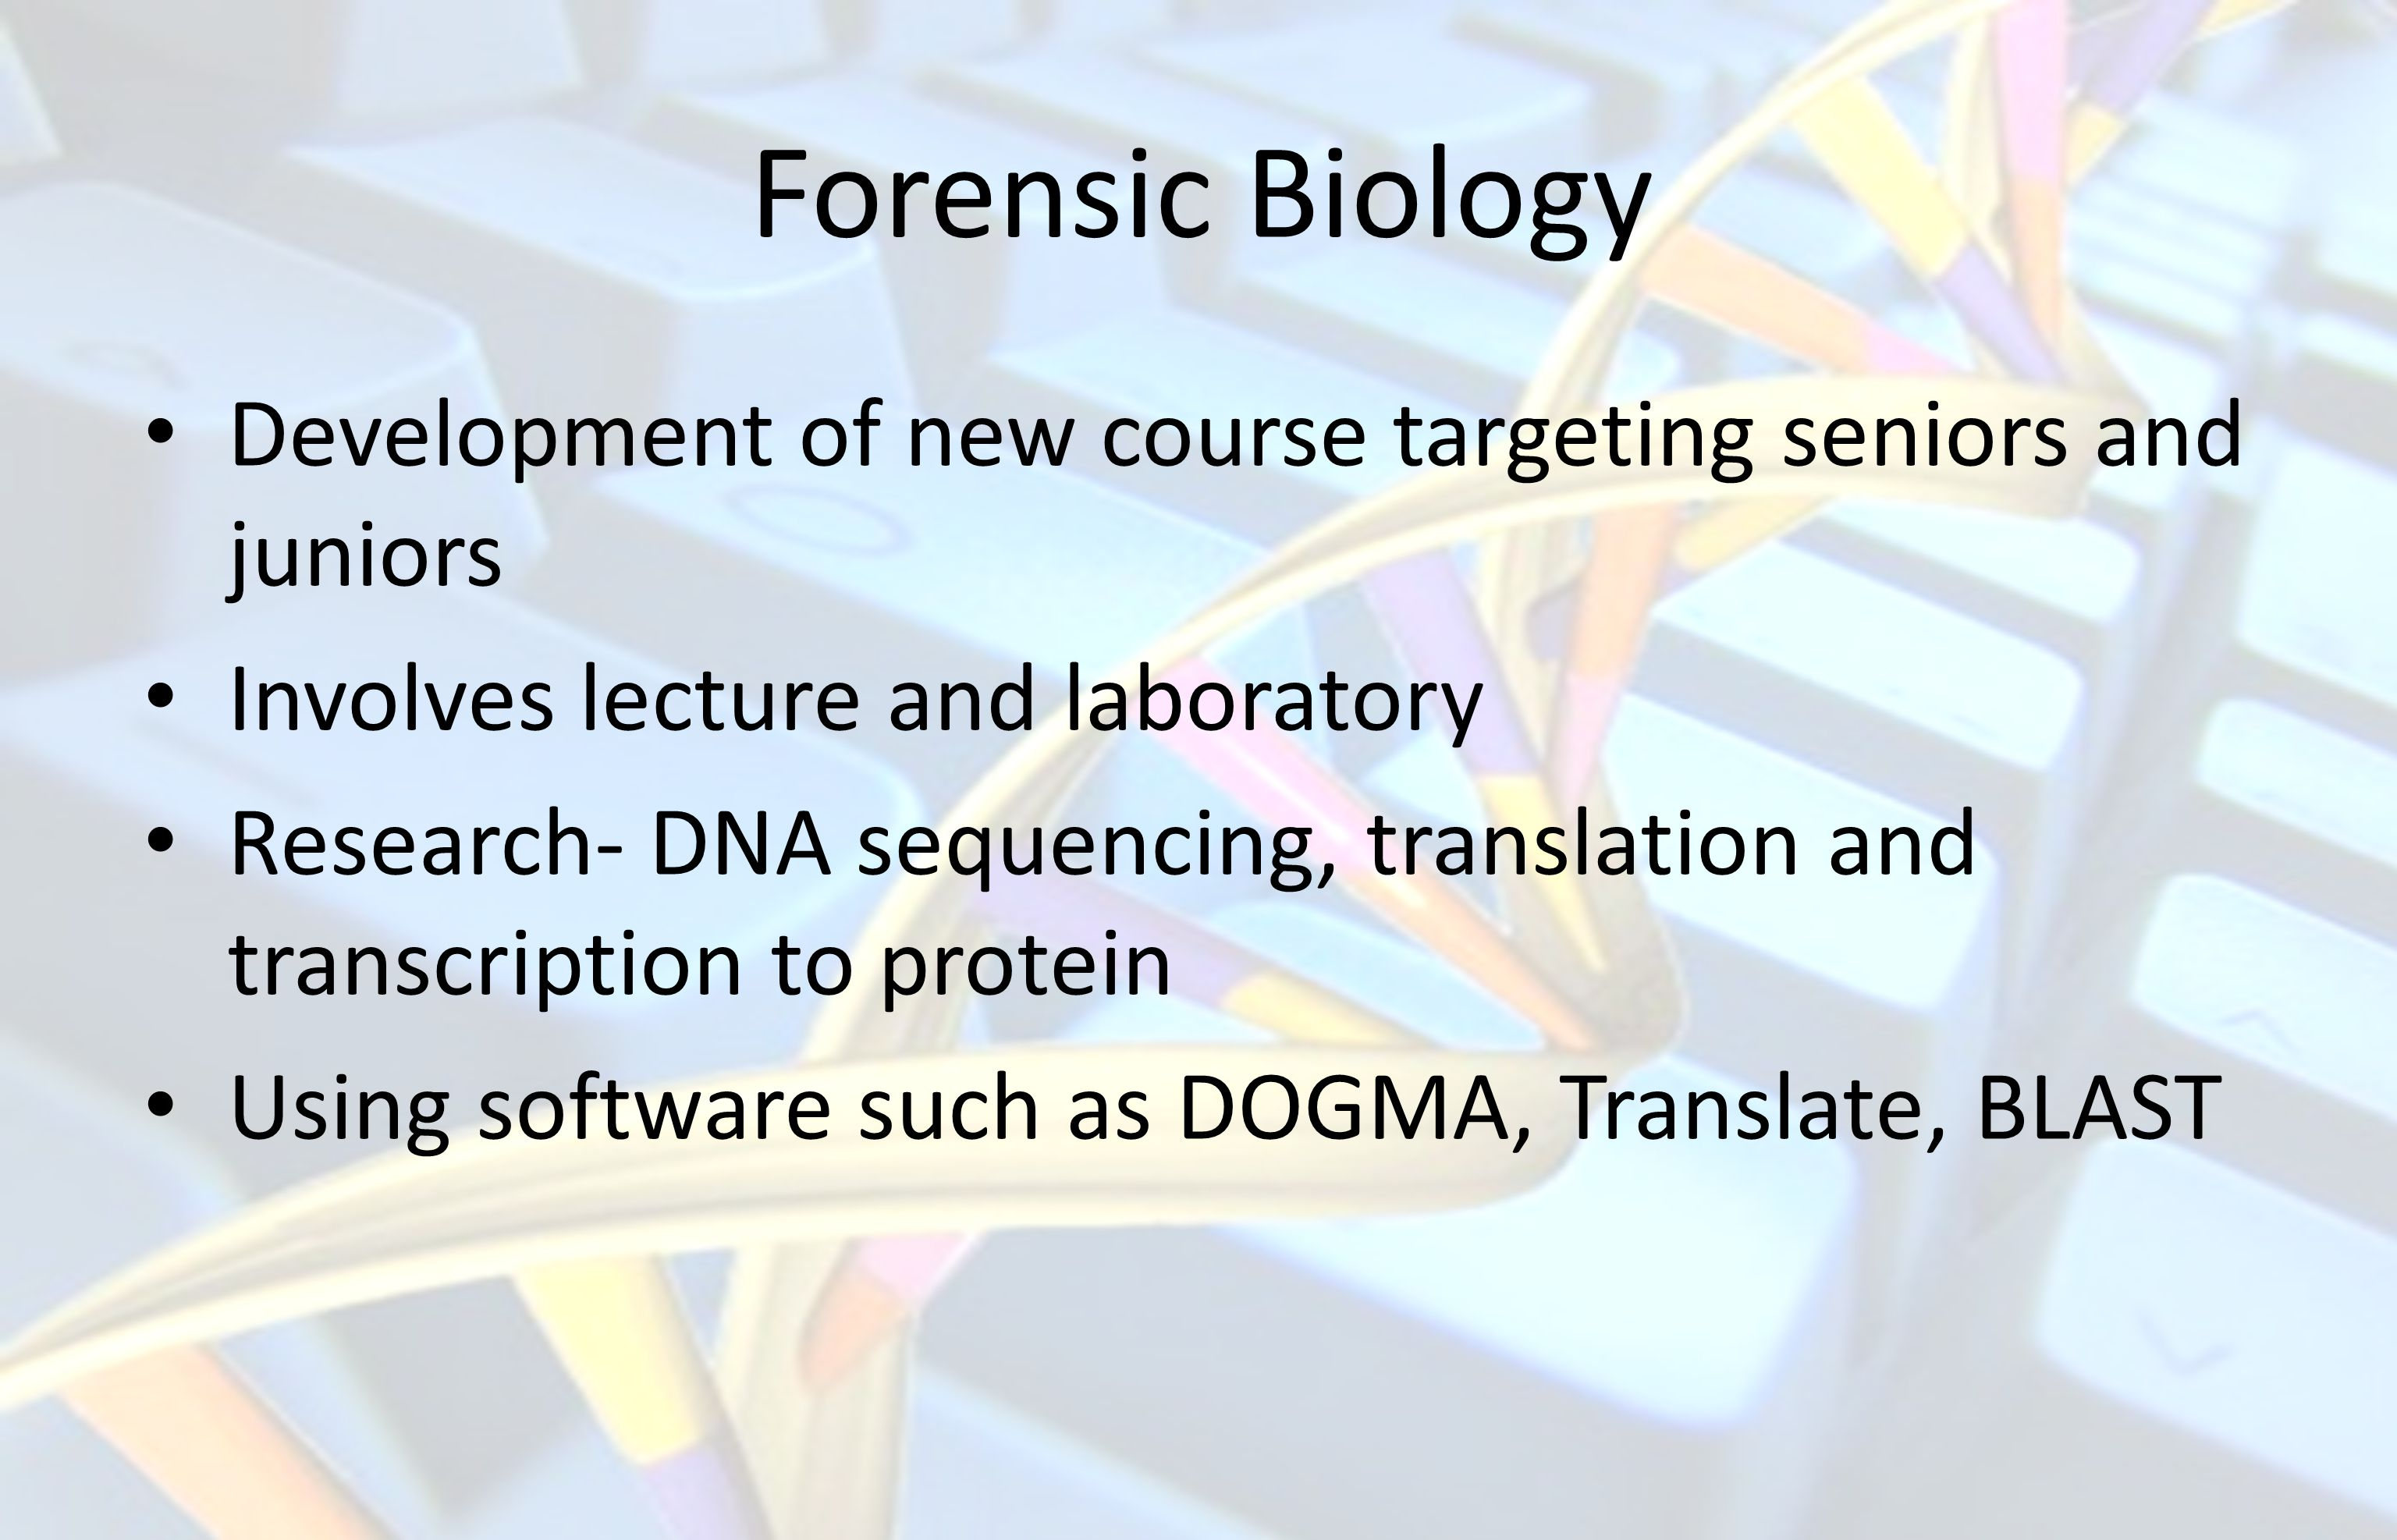 Forensic Biology Development of new course targeting seniors and juniors Involves lecture and laboratory Research- DNA sequencing, translation and transcription to protein Using software such as DOGMA, Translate, BLAST